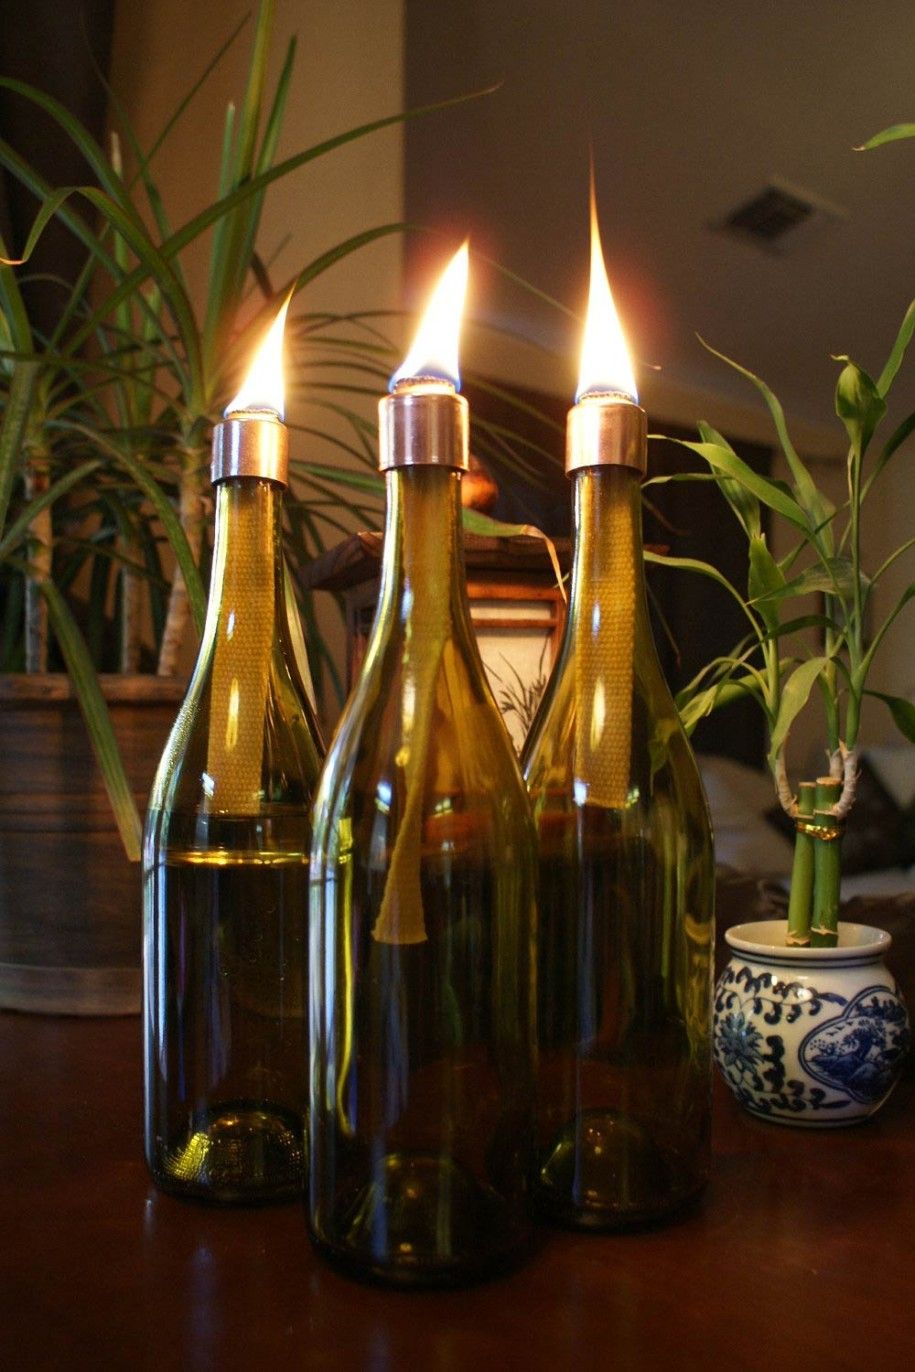 Decorating Creative Handmade Indoors Christmas Lantern Lights Decorating Ideas Christmas Lantern Oil Lamps Lighted Wine Bottles Indoor Christmas Decorations